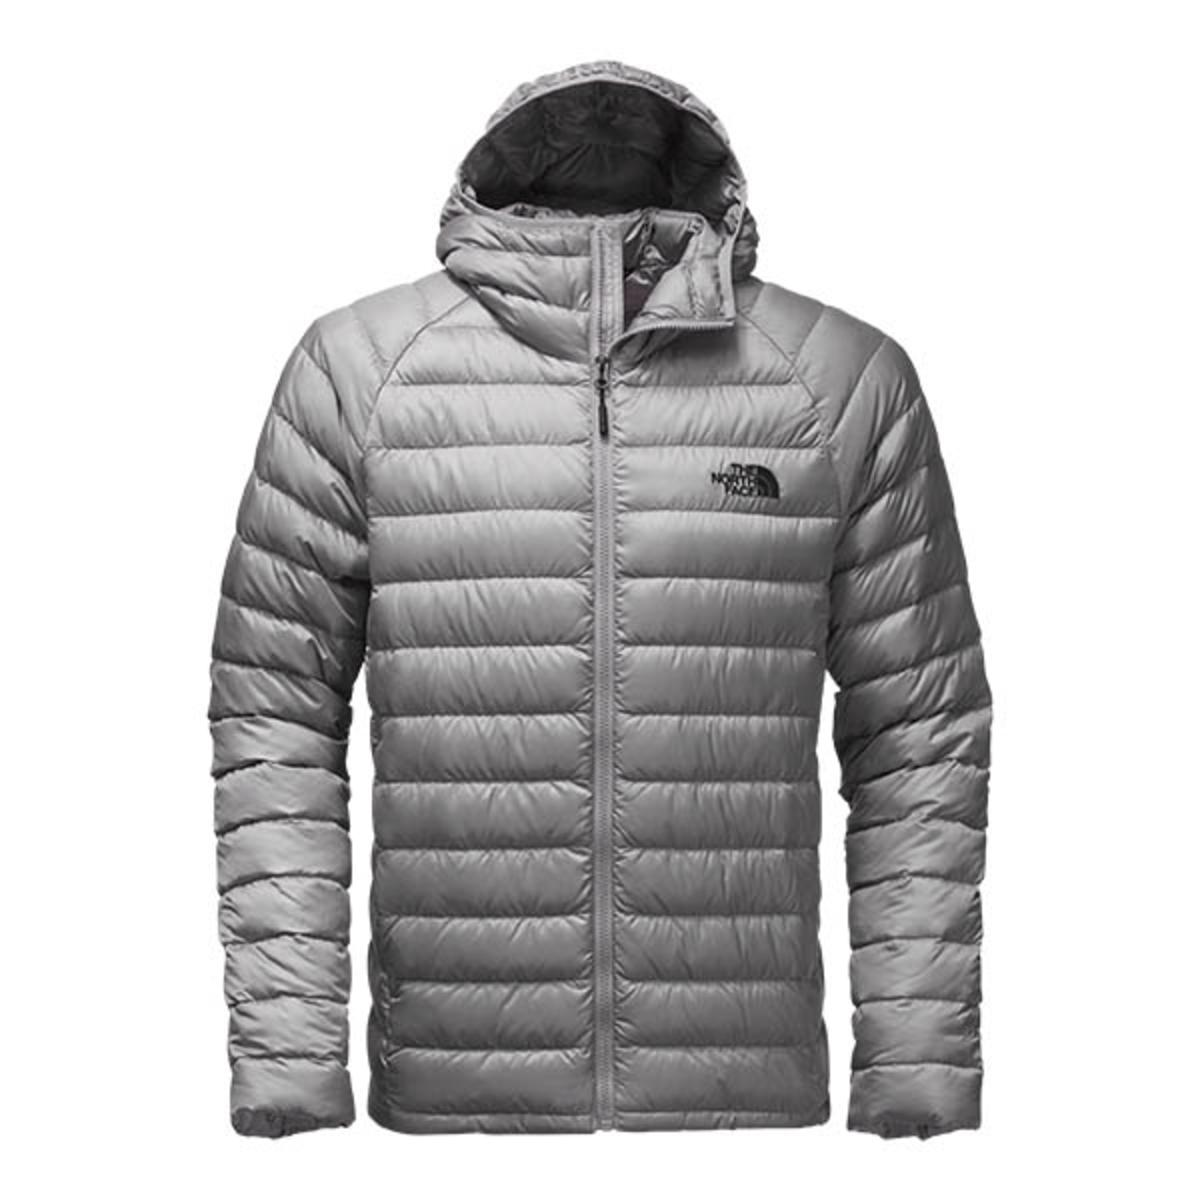 58abcd863ea7 The North Face Men s Trevail Hoodie - The Warming Store